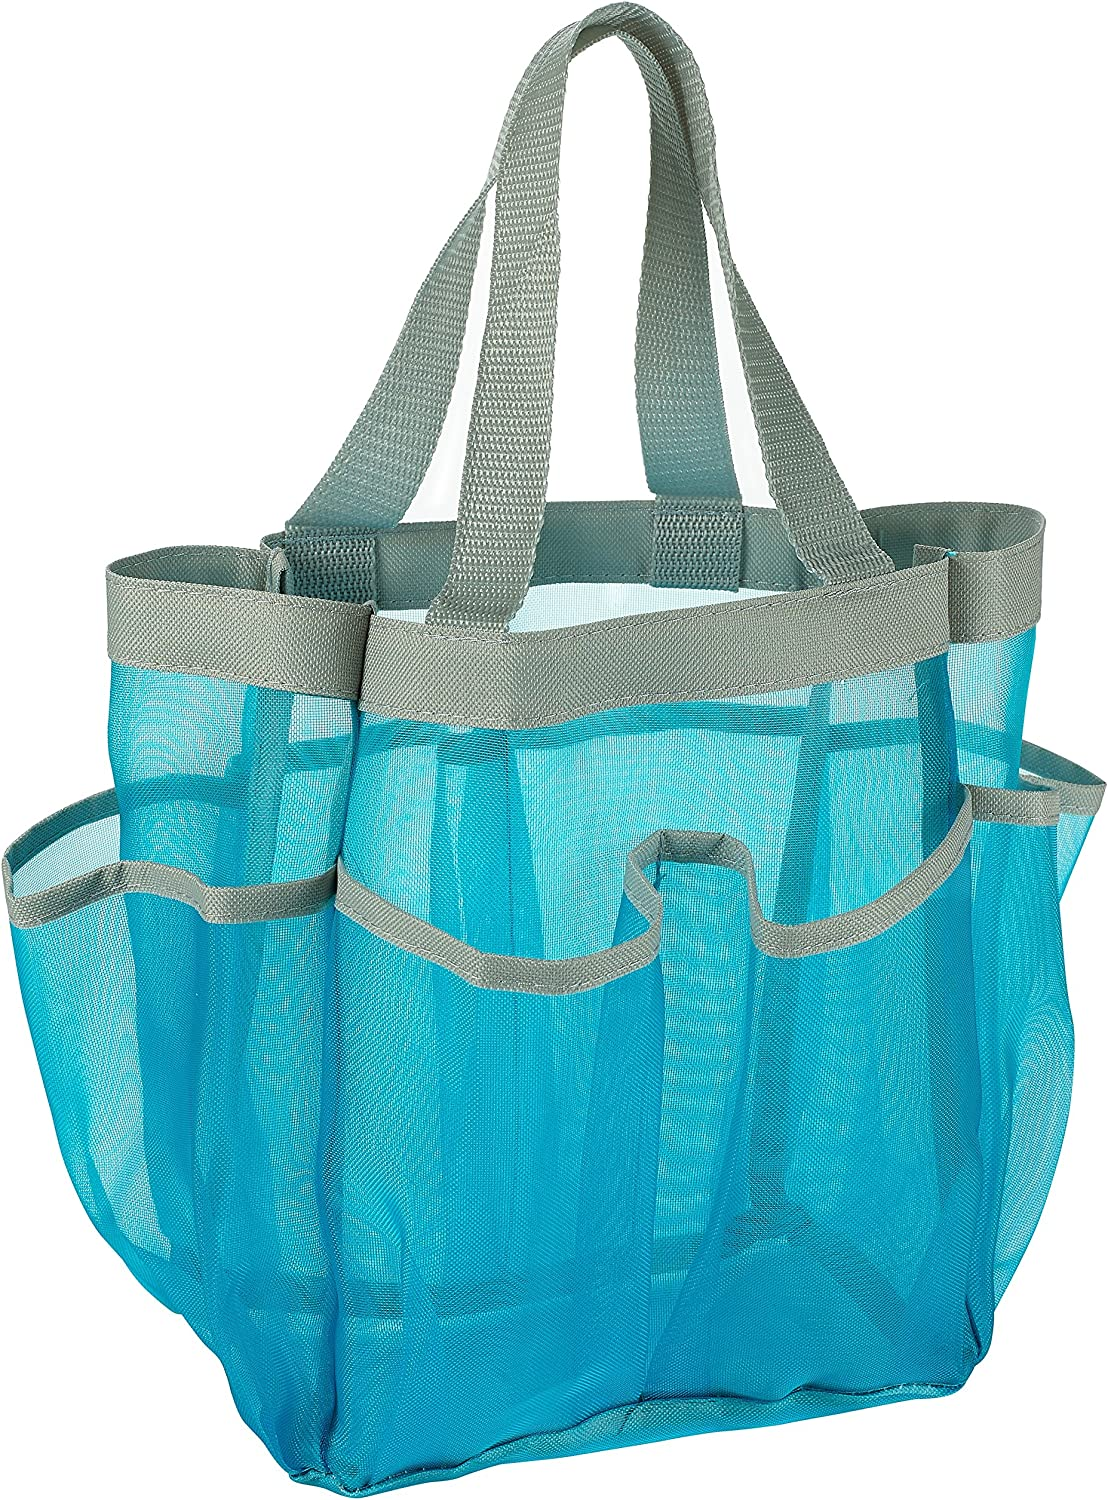 7 Pocket Shower Caddy Tote, Blue - Keep your shower essentials within easy reach. Shower caddies are perfect for college dorms, gym, shower, swimming and travel. Mesh allows water to drain easily.